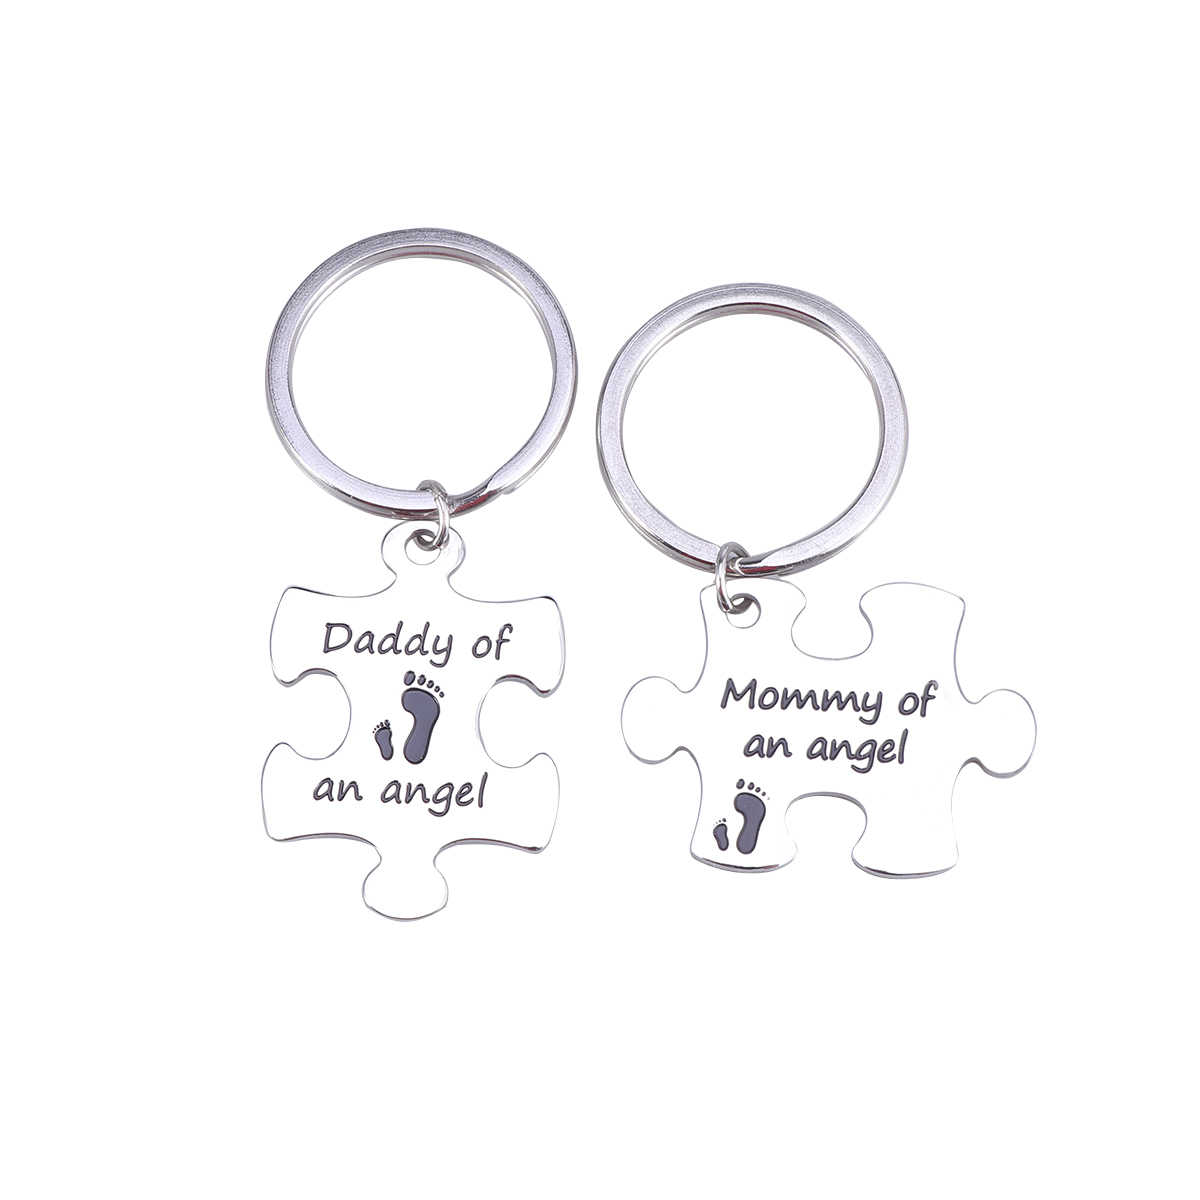 2-Piece Puzzle Nickle-free Eco-friendly Mommy Daddy of an Angel Keychain Set Miscarriage Jewelry Baby Memorial Gift